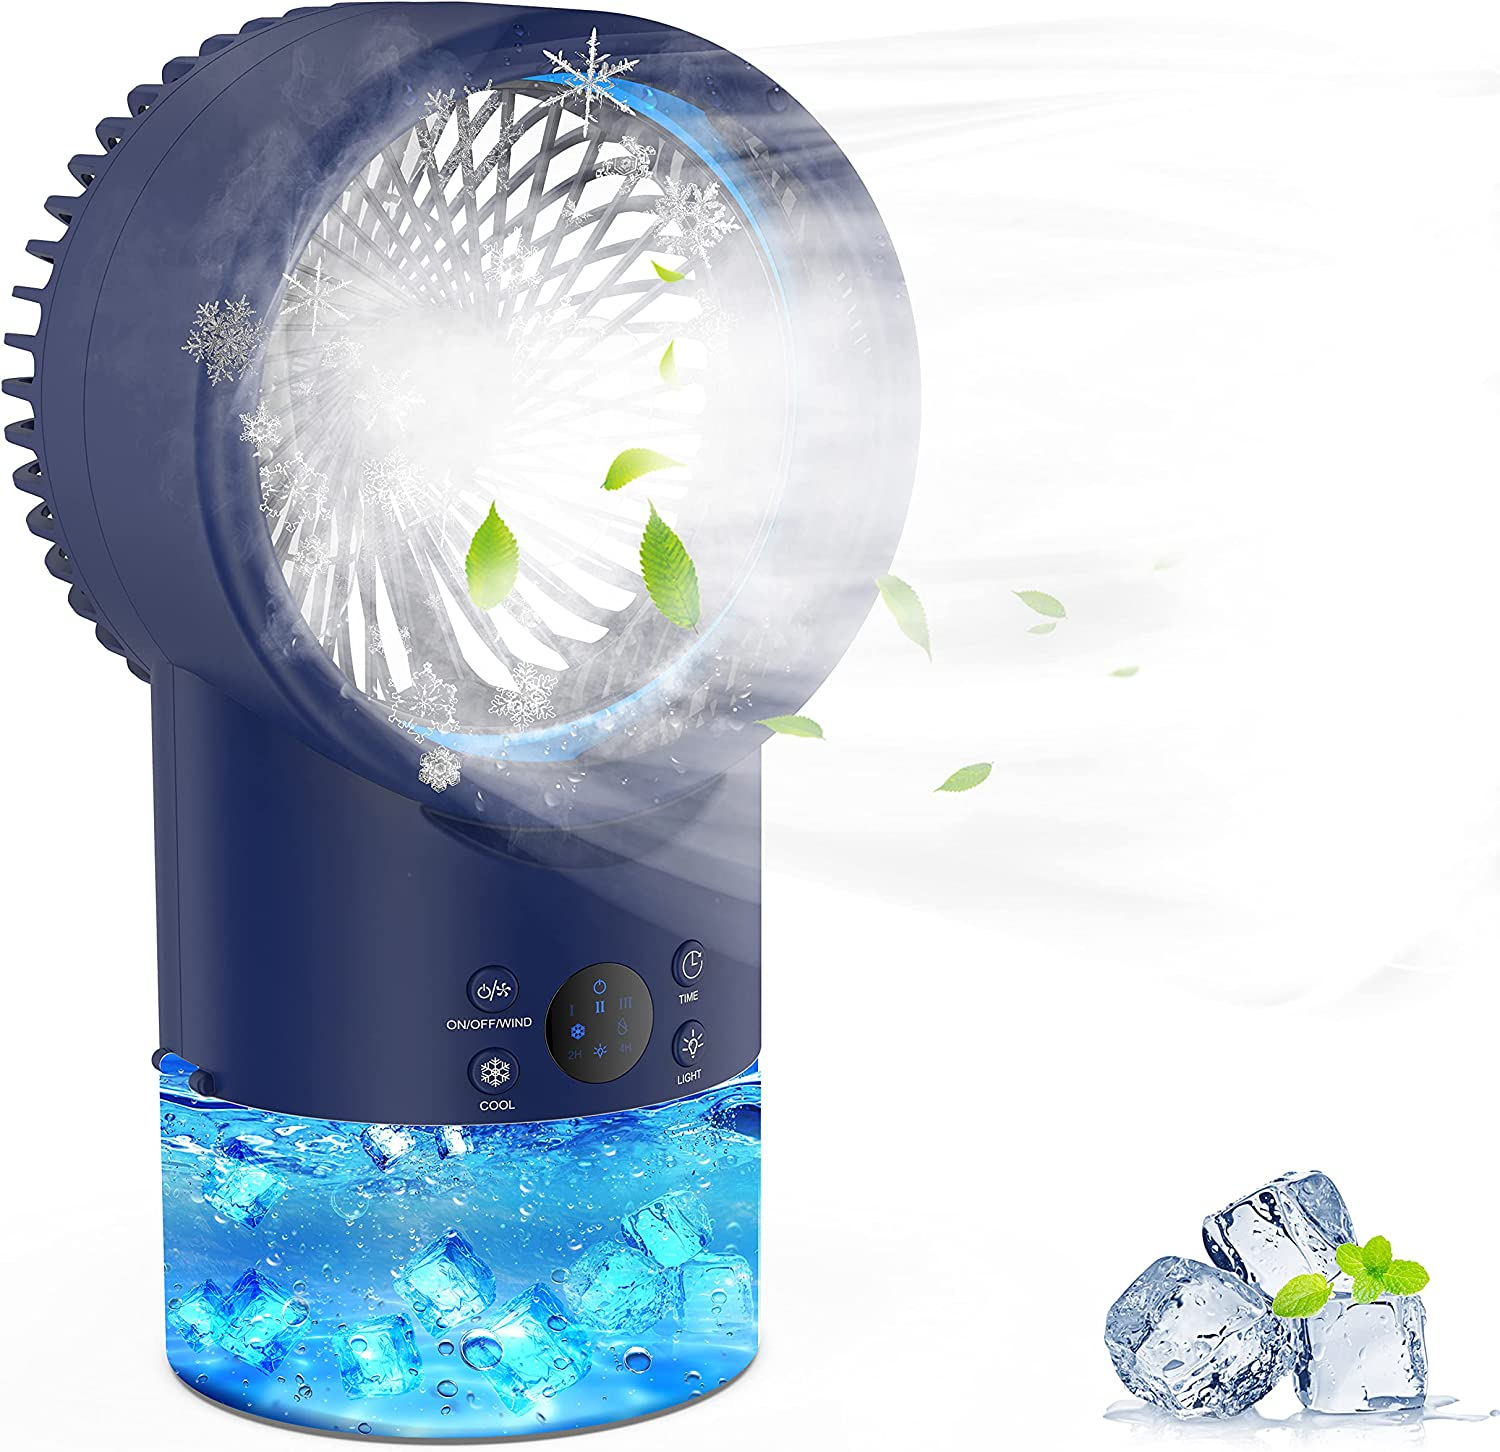 EEIEER Air Conditioner Fan Personal Evaporative Cooler Circulator 3 Speeds 2/4H Timer 7 Colors LED Light 2 Misting Modes Humidifier Quiet Mist Cooling Desk Fan for Home Office Room